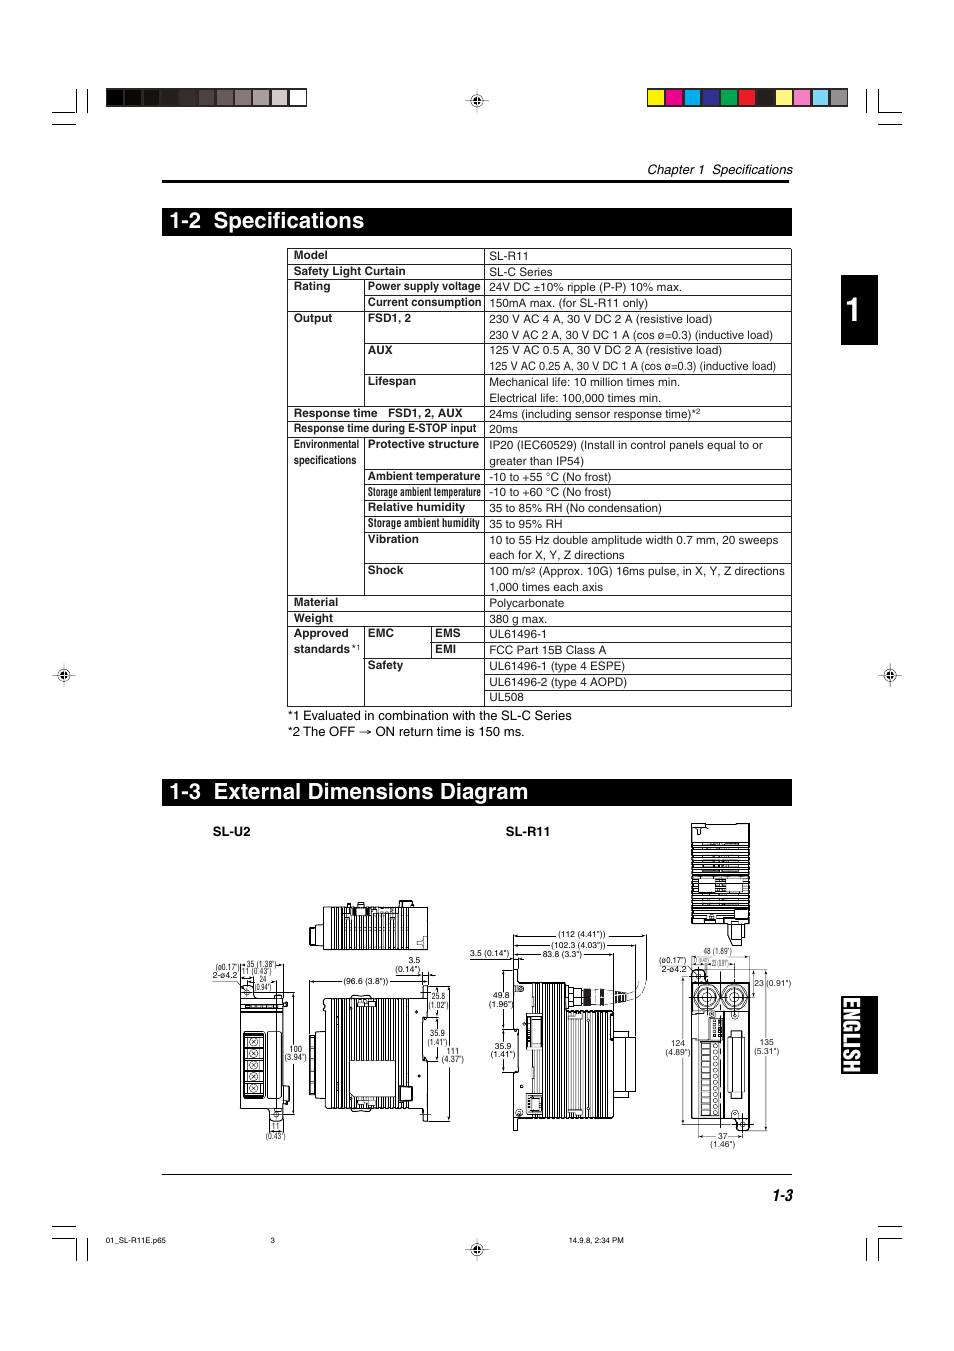 2 Specifications  3 External Dimensions Diagram  English 1